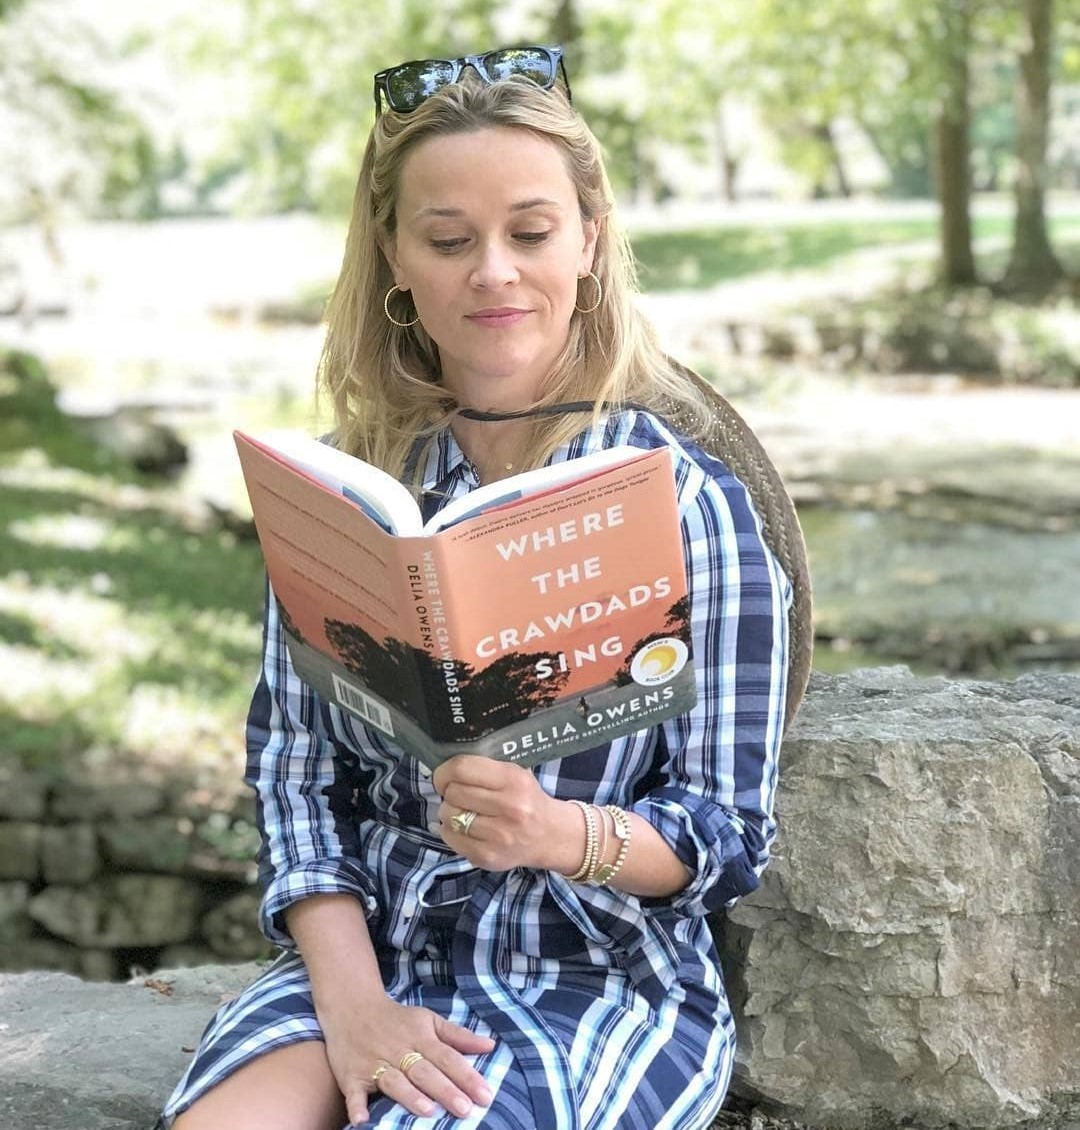 Reese Witherspoon rated the book